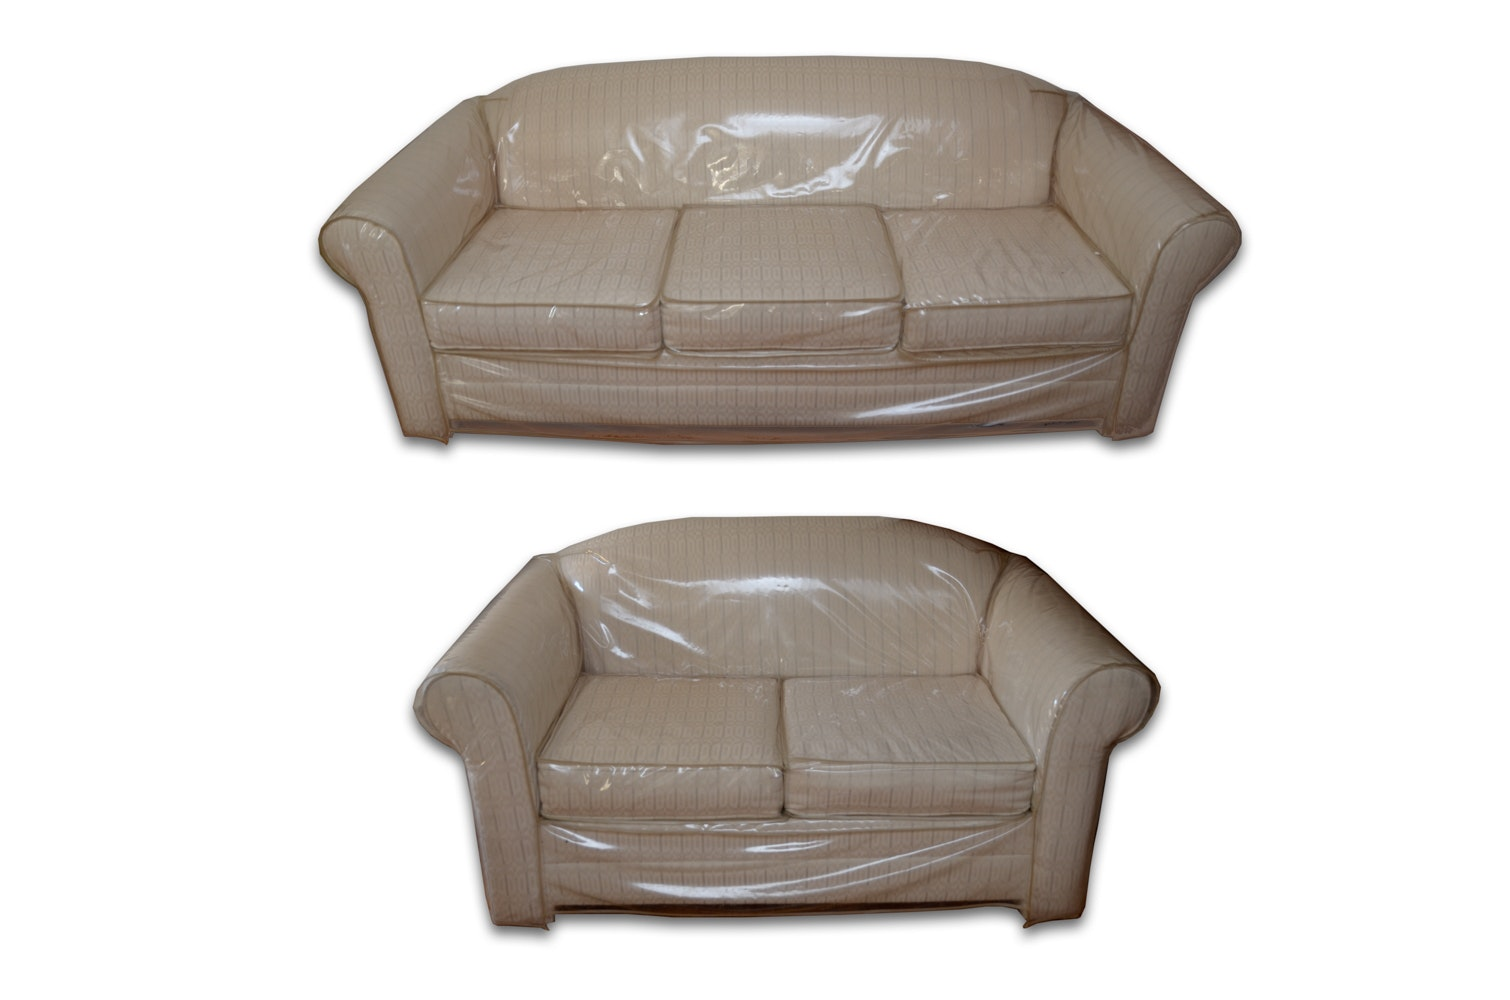 Vintage Sofa and Loveseat by Alexvale Furniture Inc.